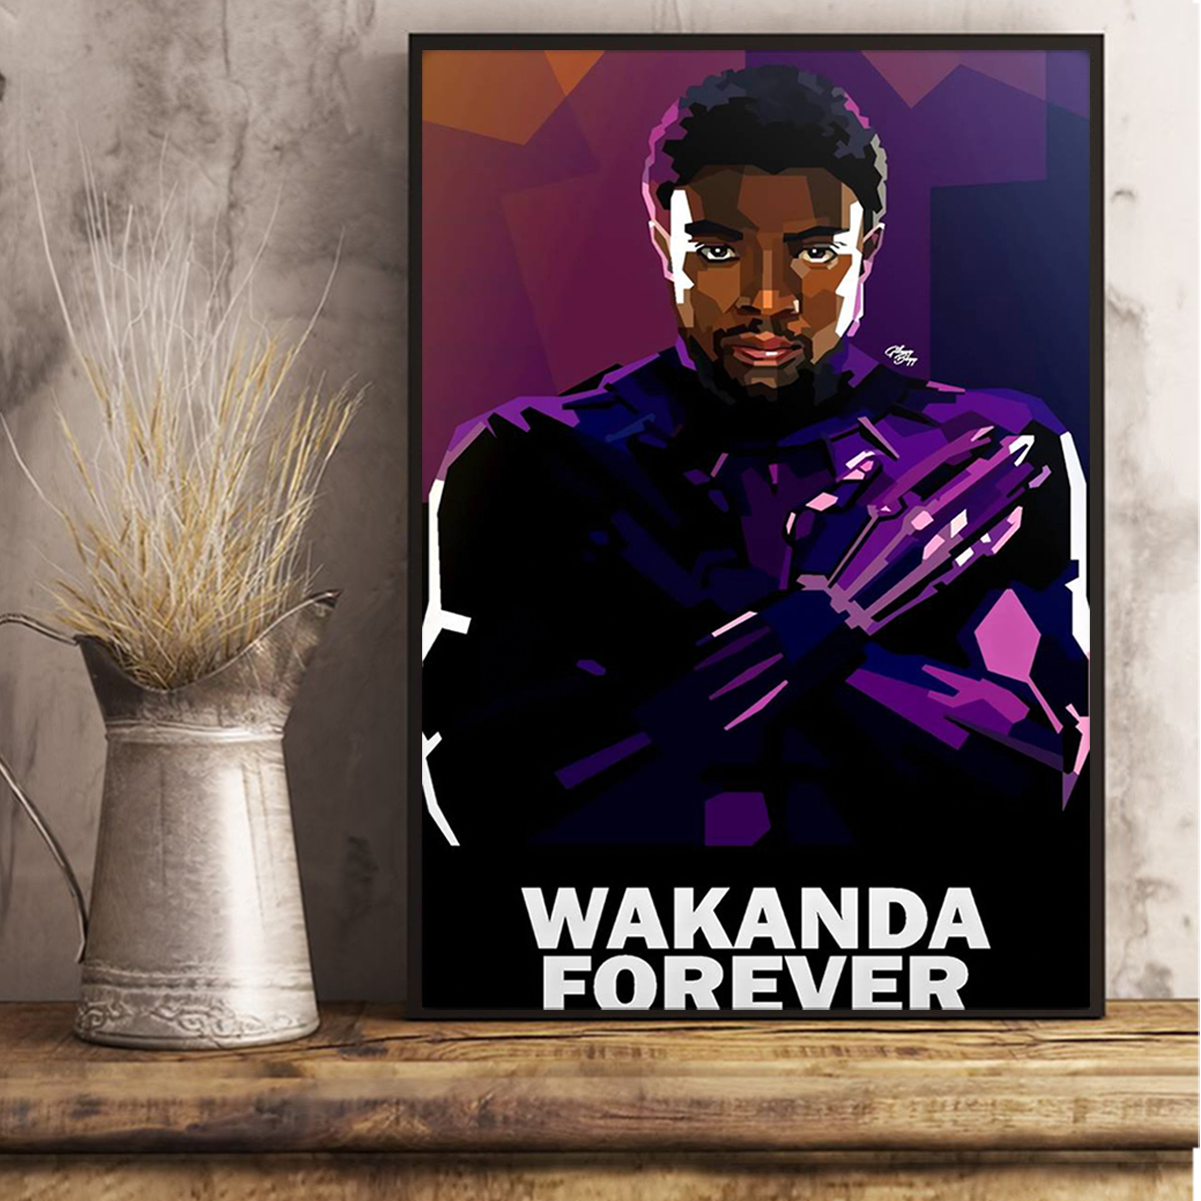 Wakanda forever poster A2